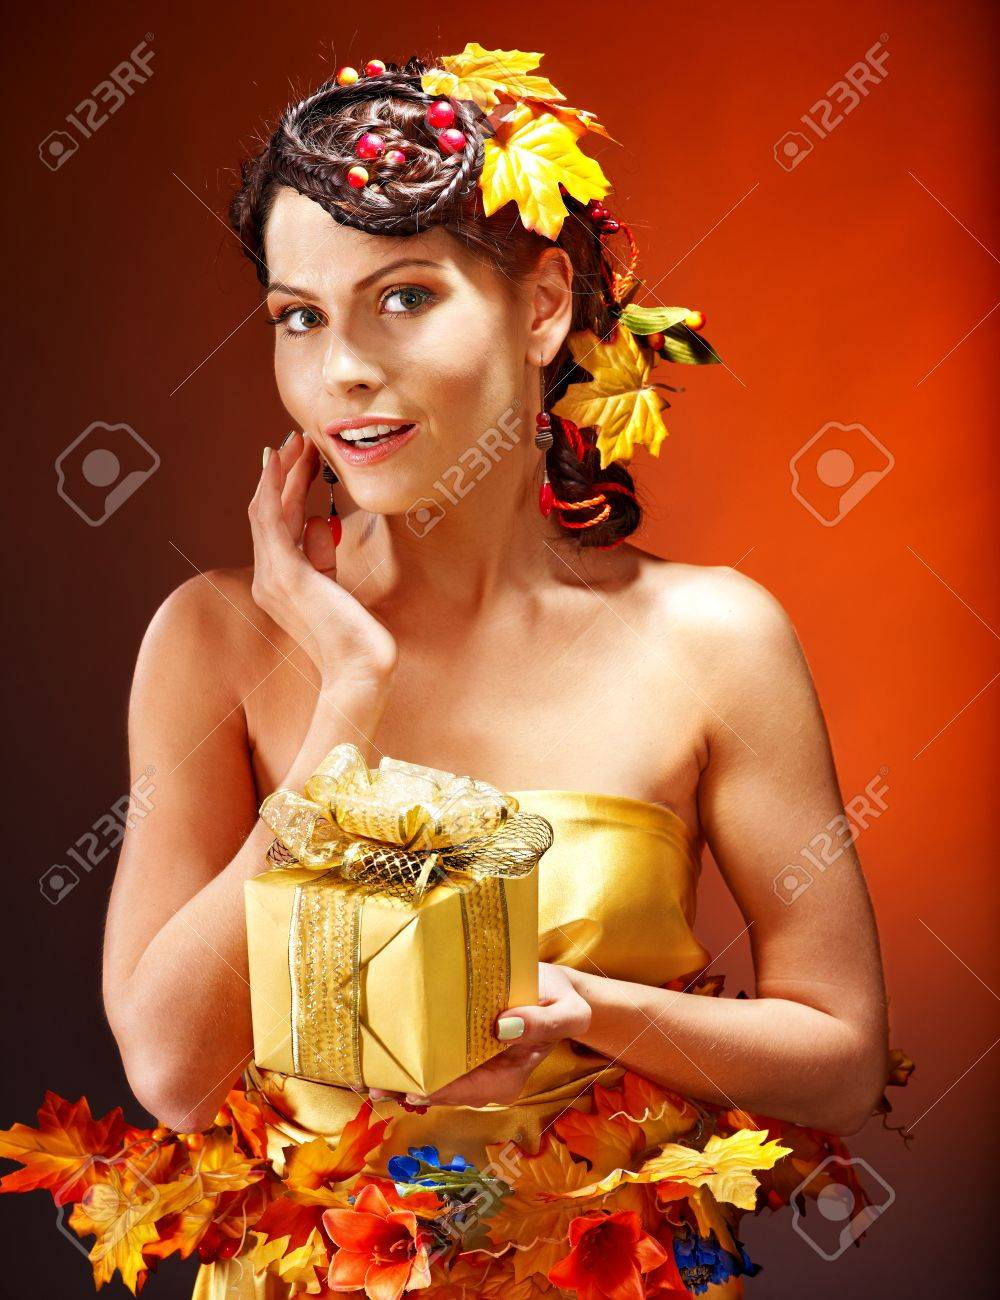 Woman with  autumn hairstyle  holding gift box. Stock Photo - 15464682